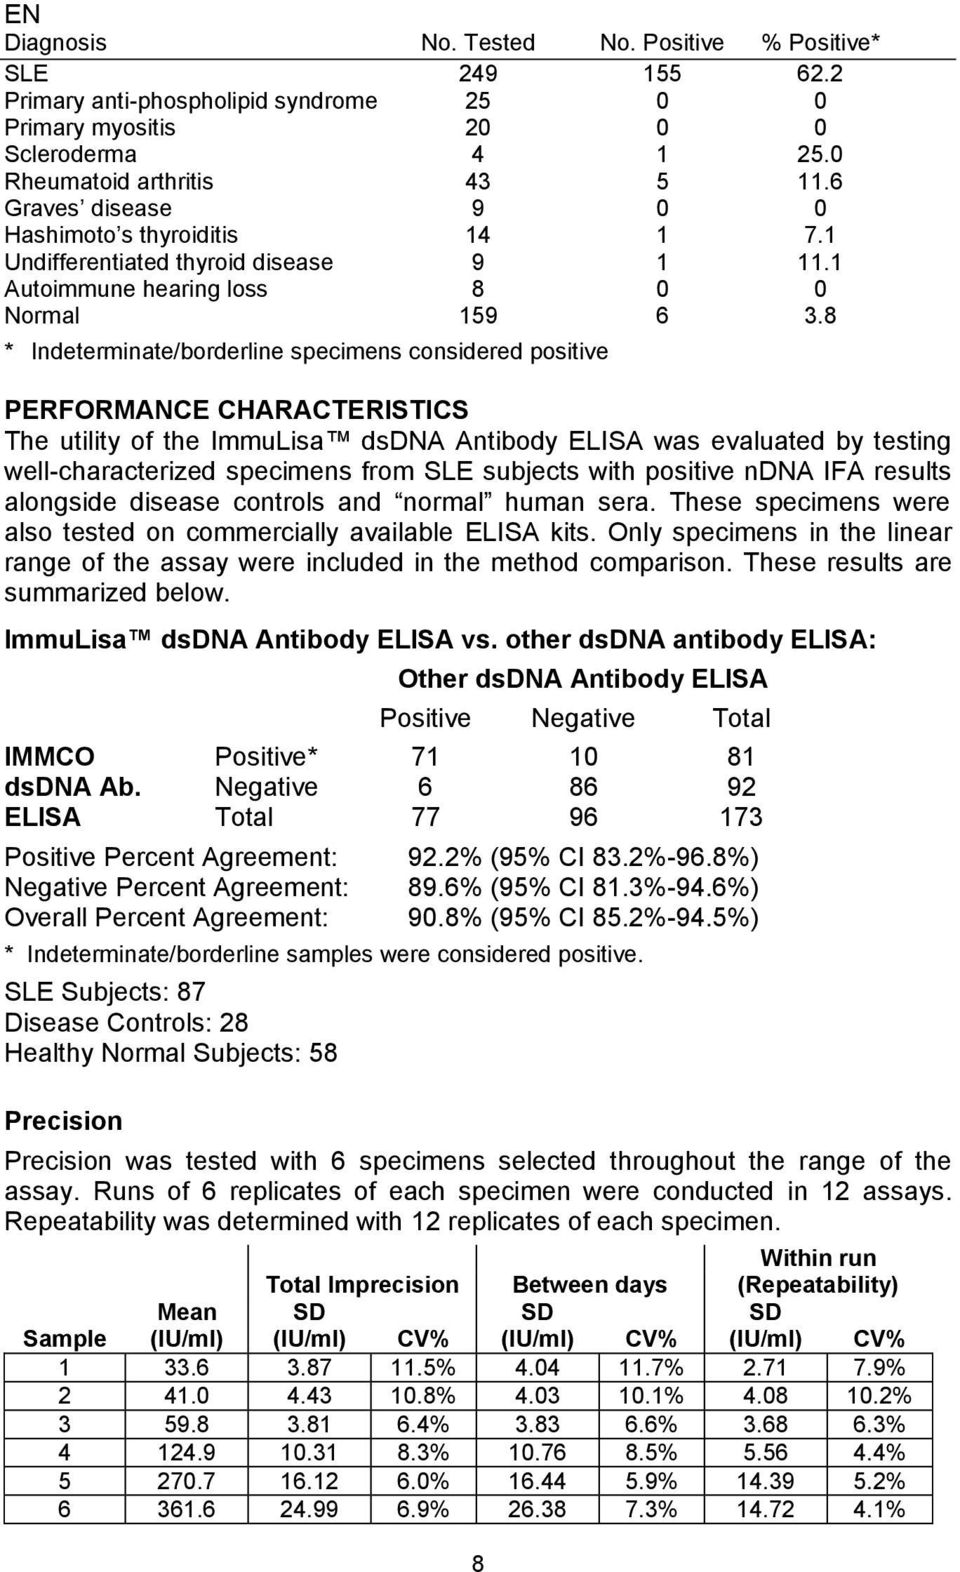 8 * Indeterminate/borderline specimens considered positive PERFORMANCE CHARACTERISTICS The utility of the ImmuLisa dsdna Antibody ELISA was evaluated by testing well-characterized specimens from SLE